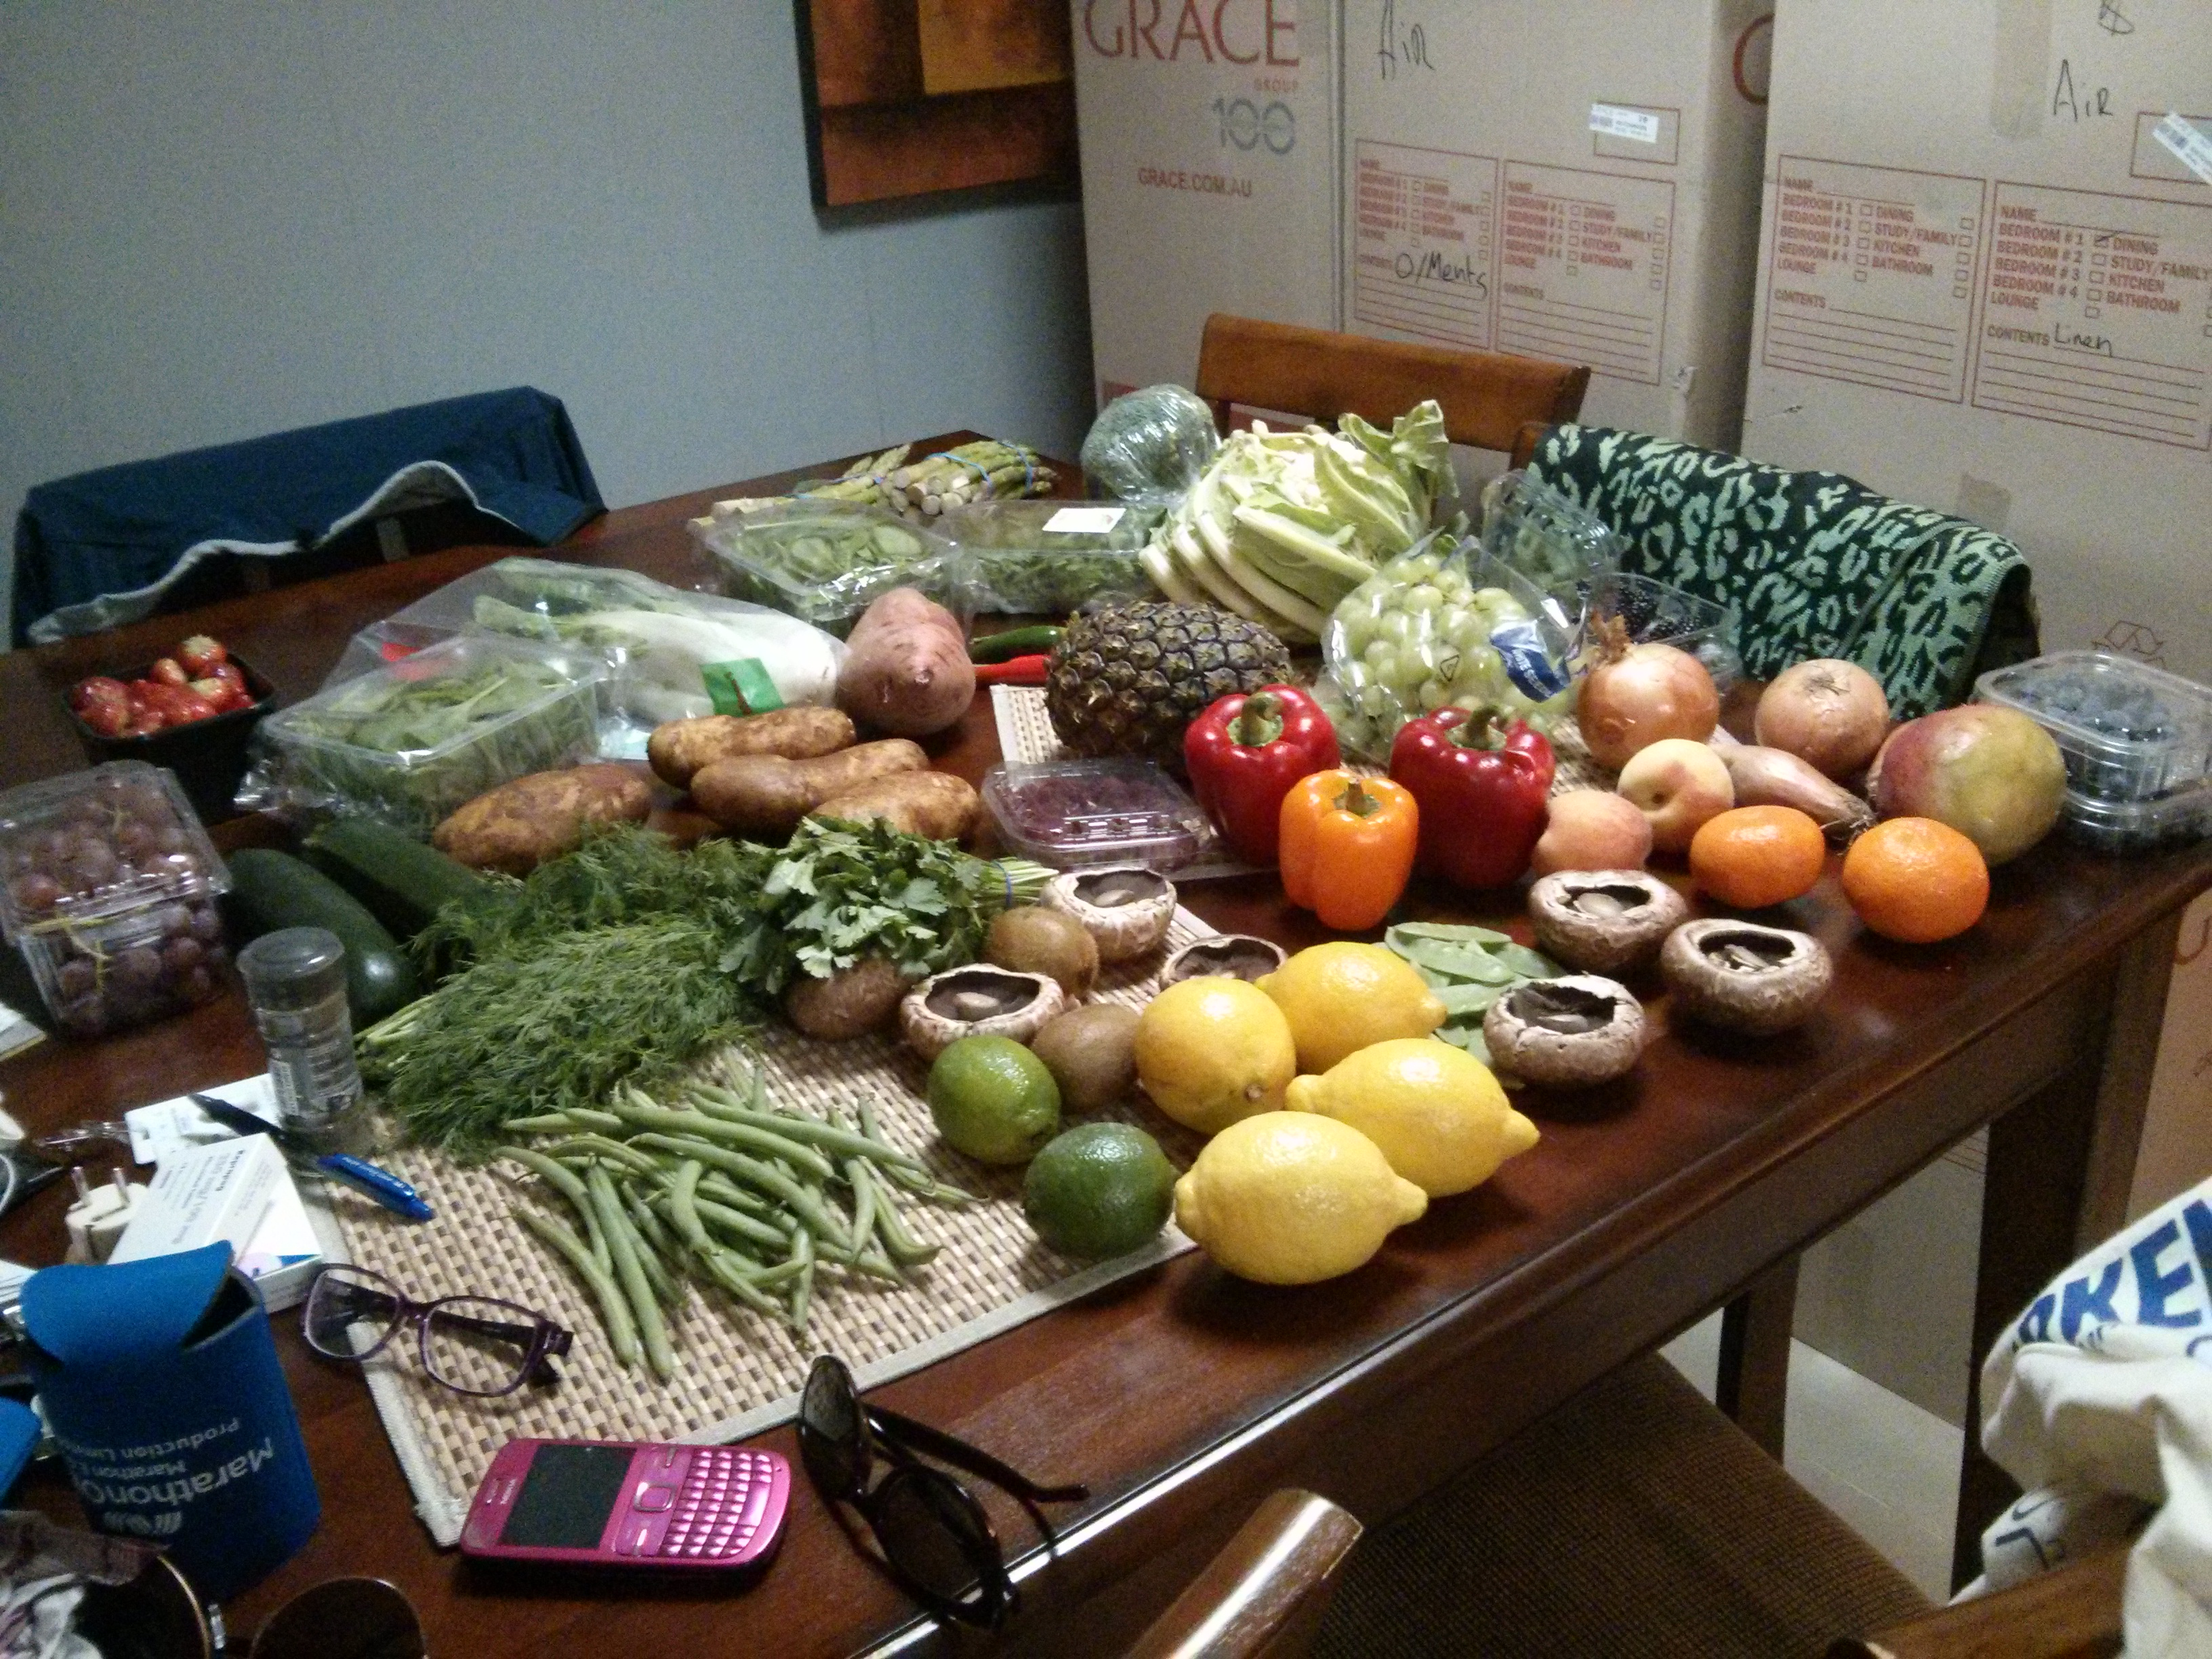 Our spoils following my first fresh food drop.